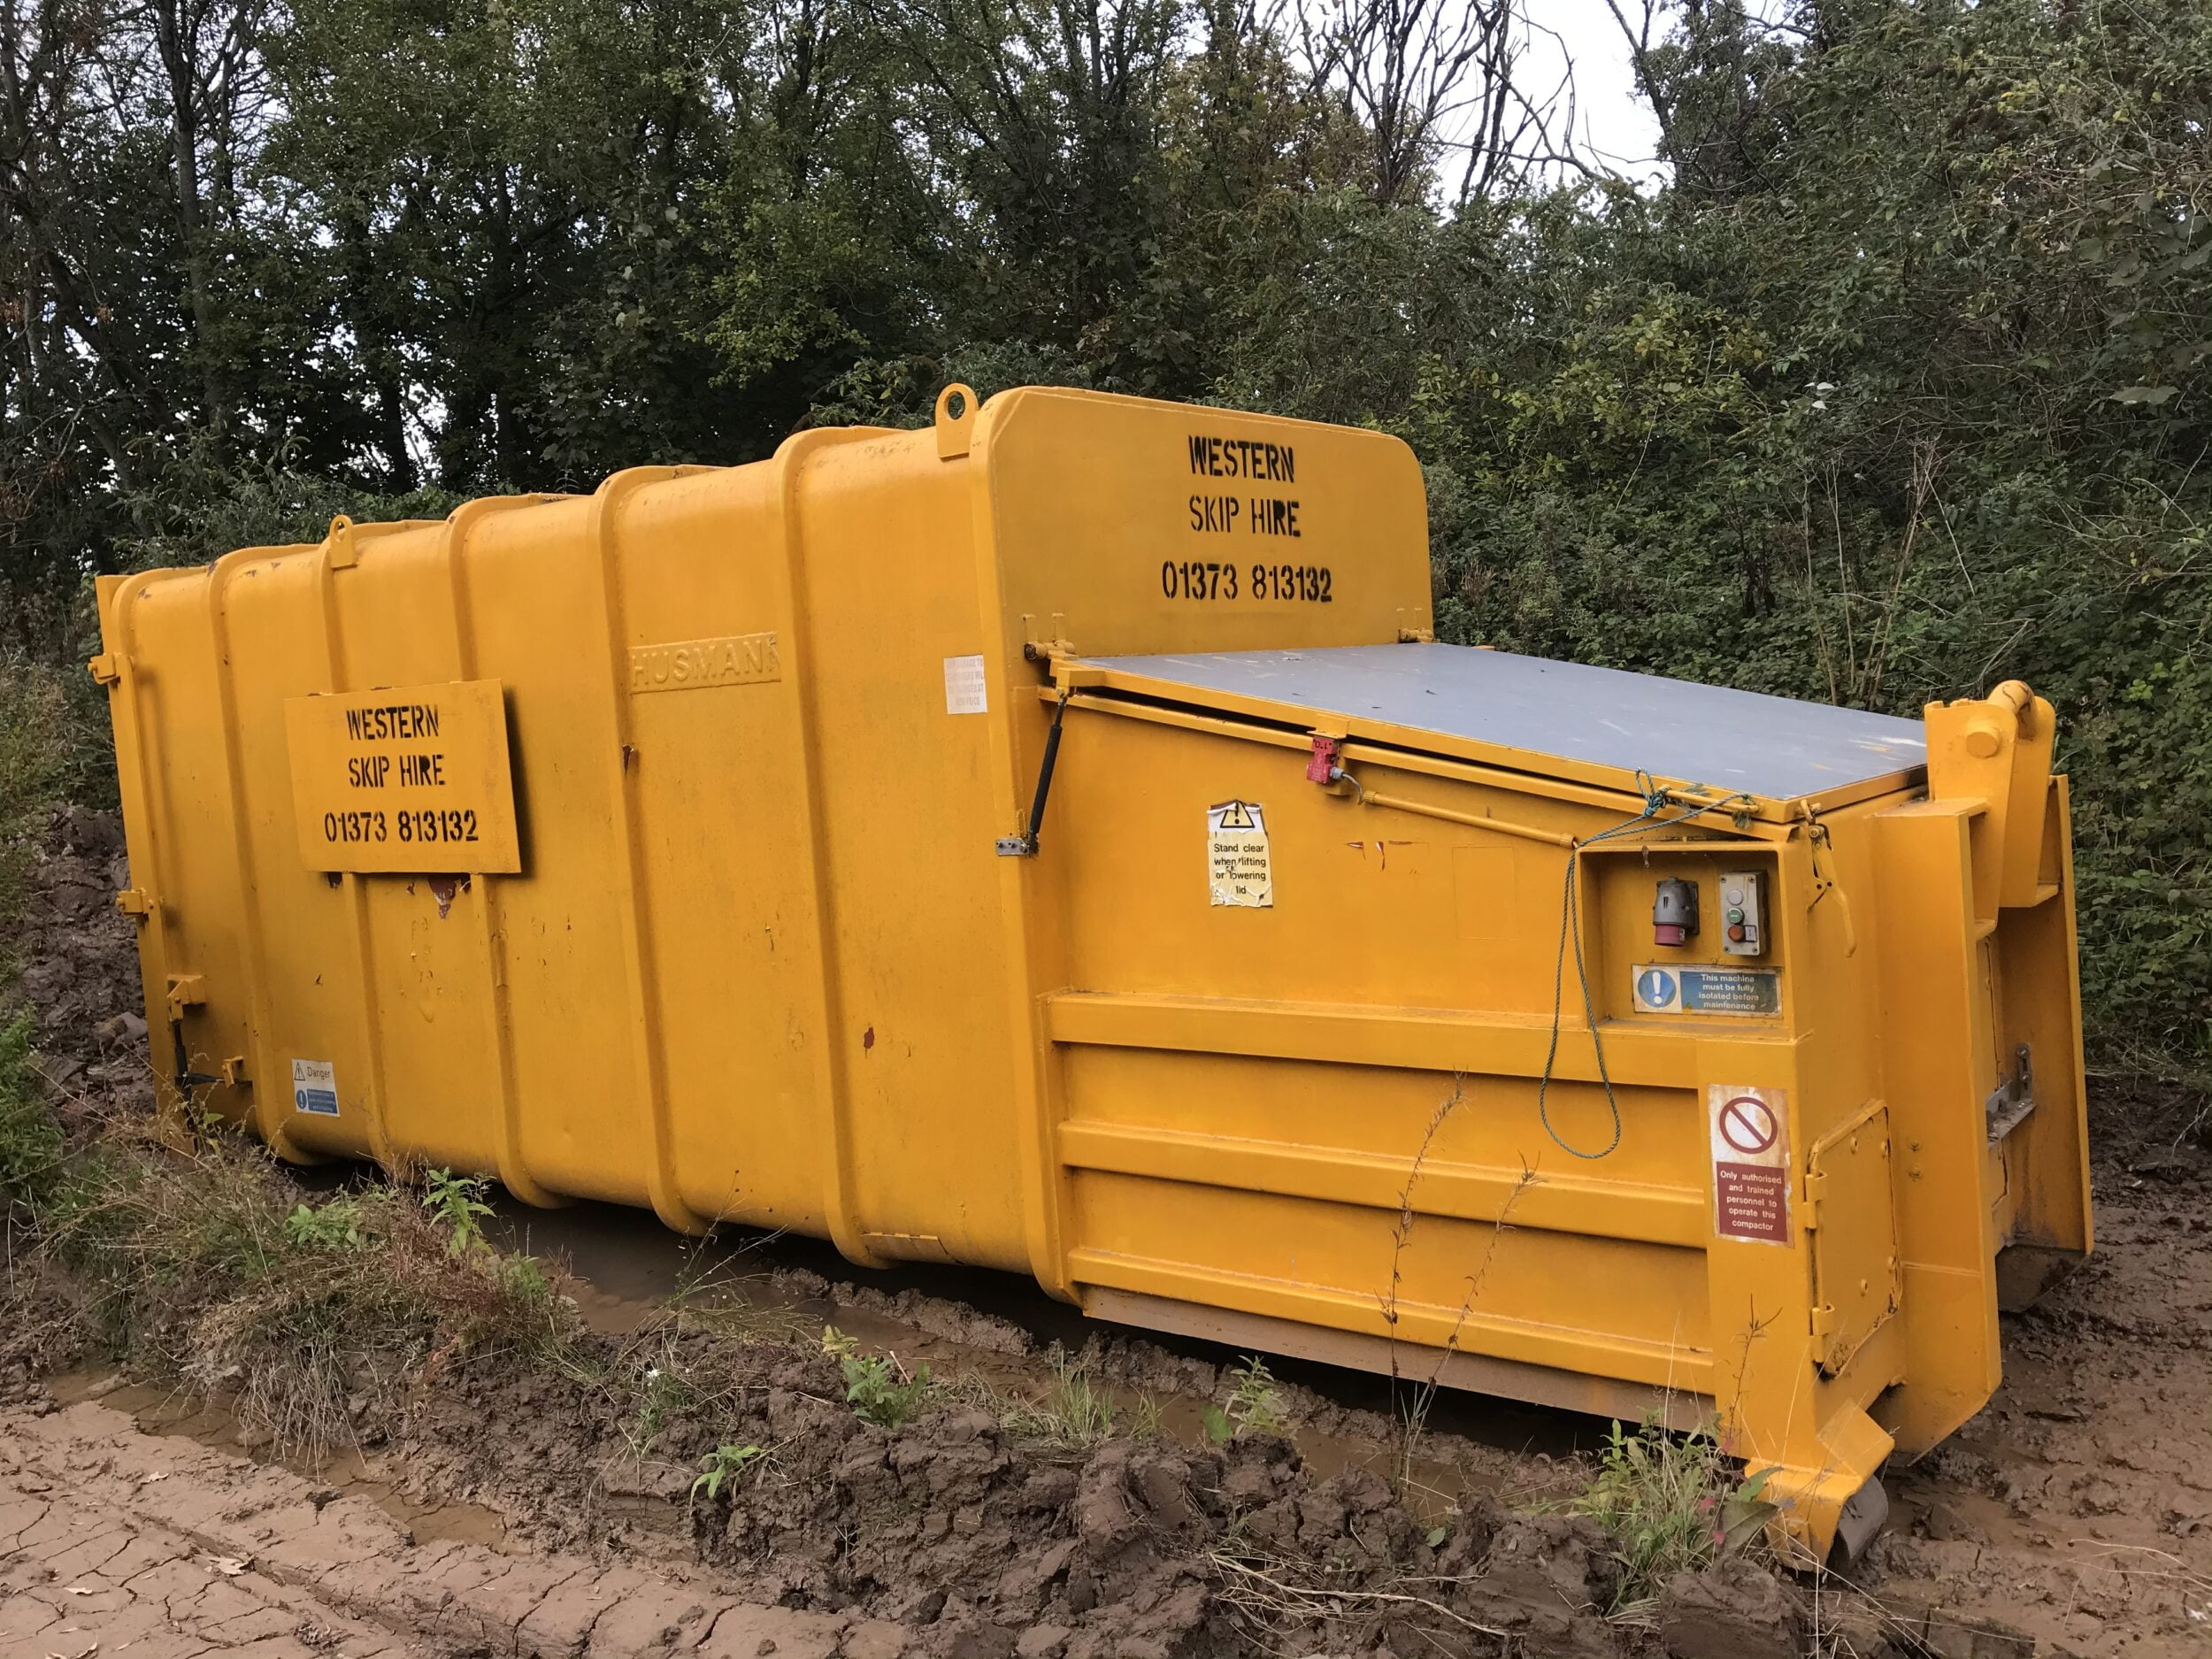 Large Yellow Compactor Skip. Western Skip Hire, Skip Hire, Sweeper Hire, Aggregates, Recycled Waste Stone and Concrete. Westbury, Frome, Somerset, Wiltshire.